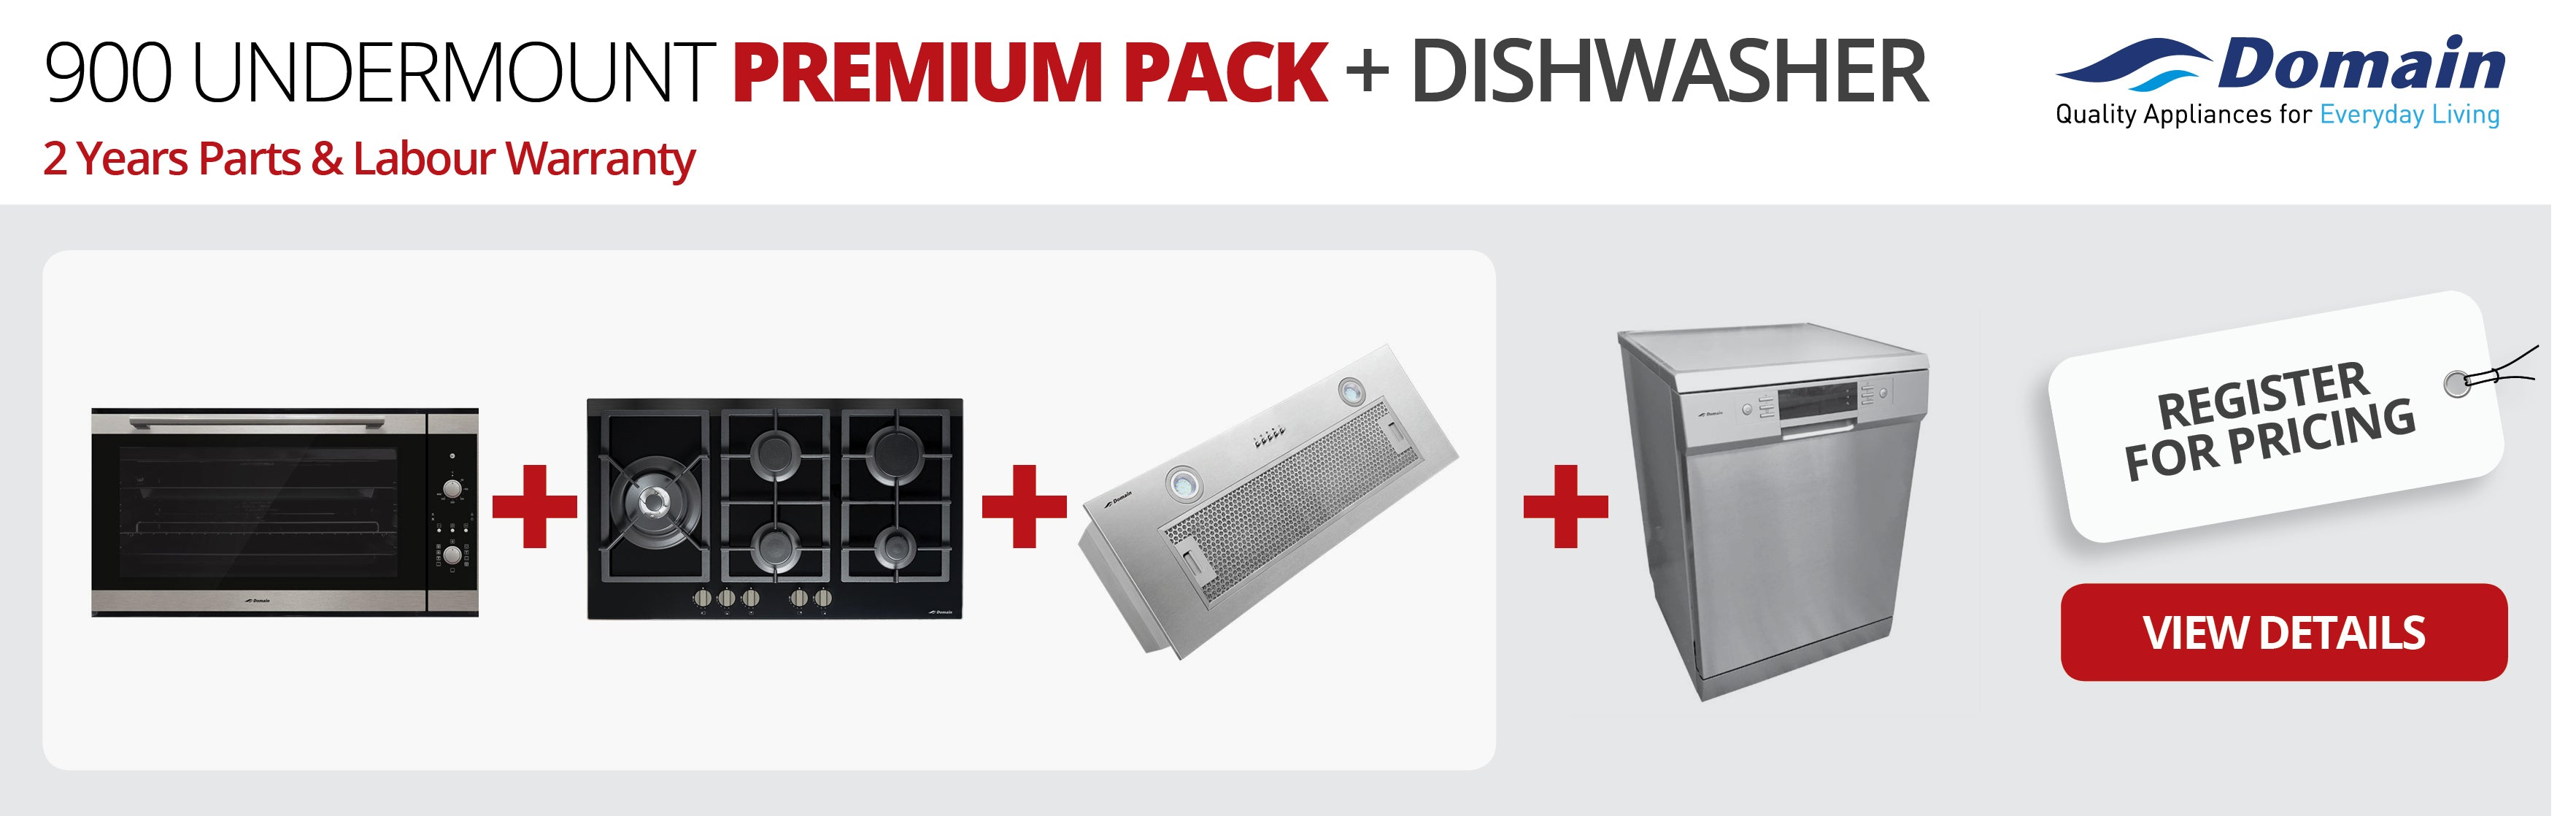 900 UNDERMOUNT Premium Pack + Dishwasher